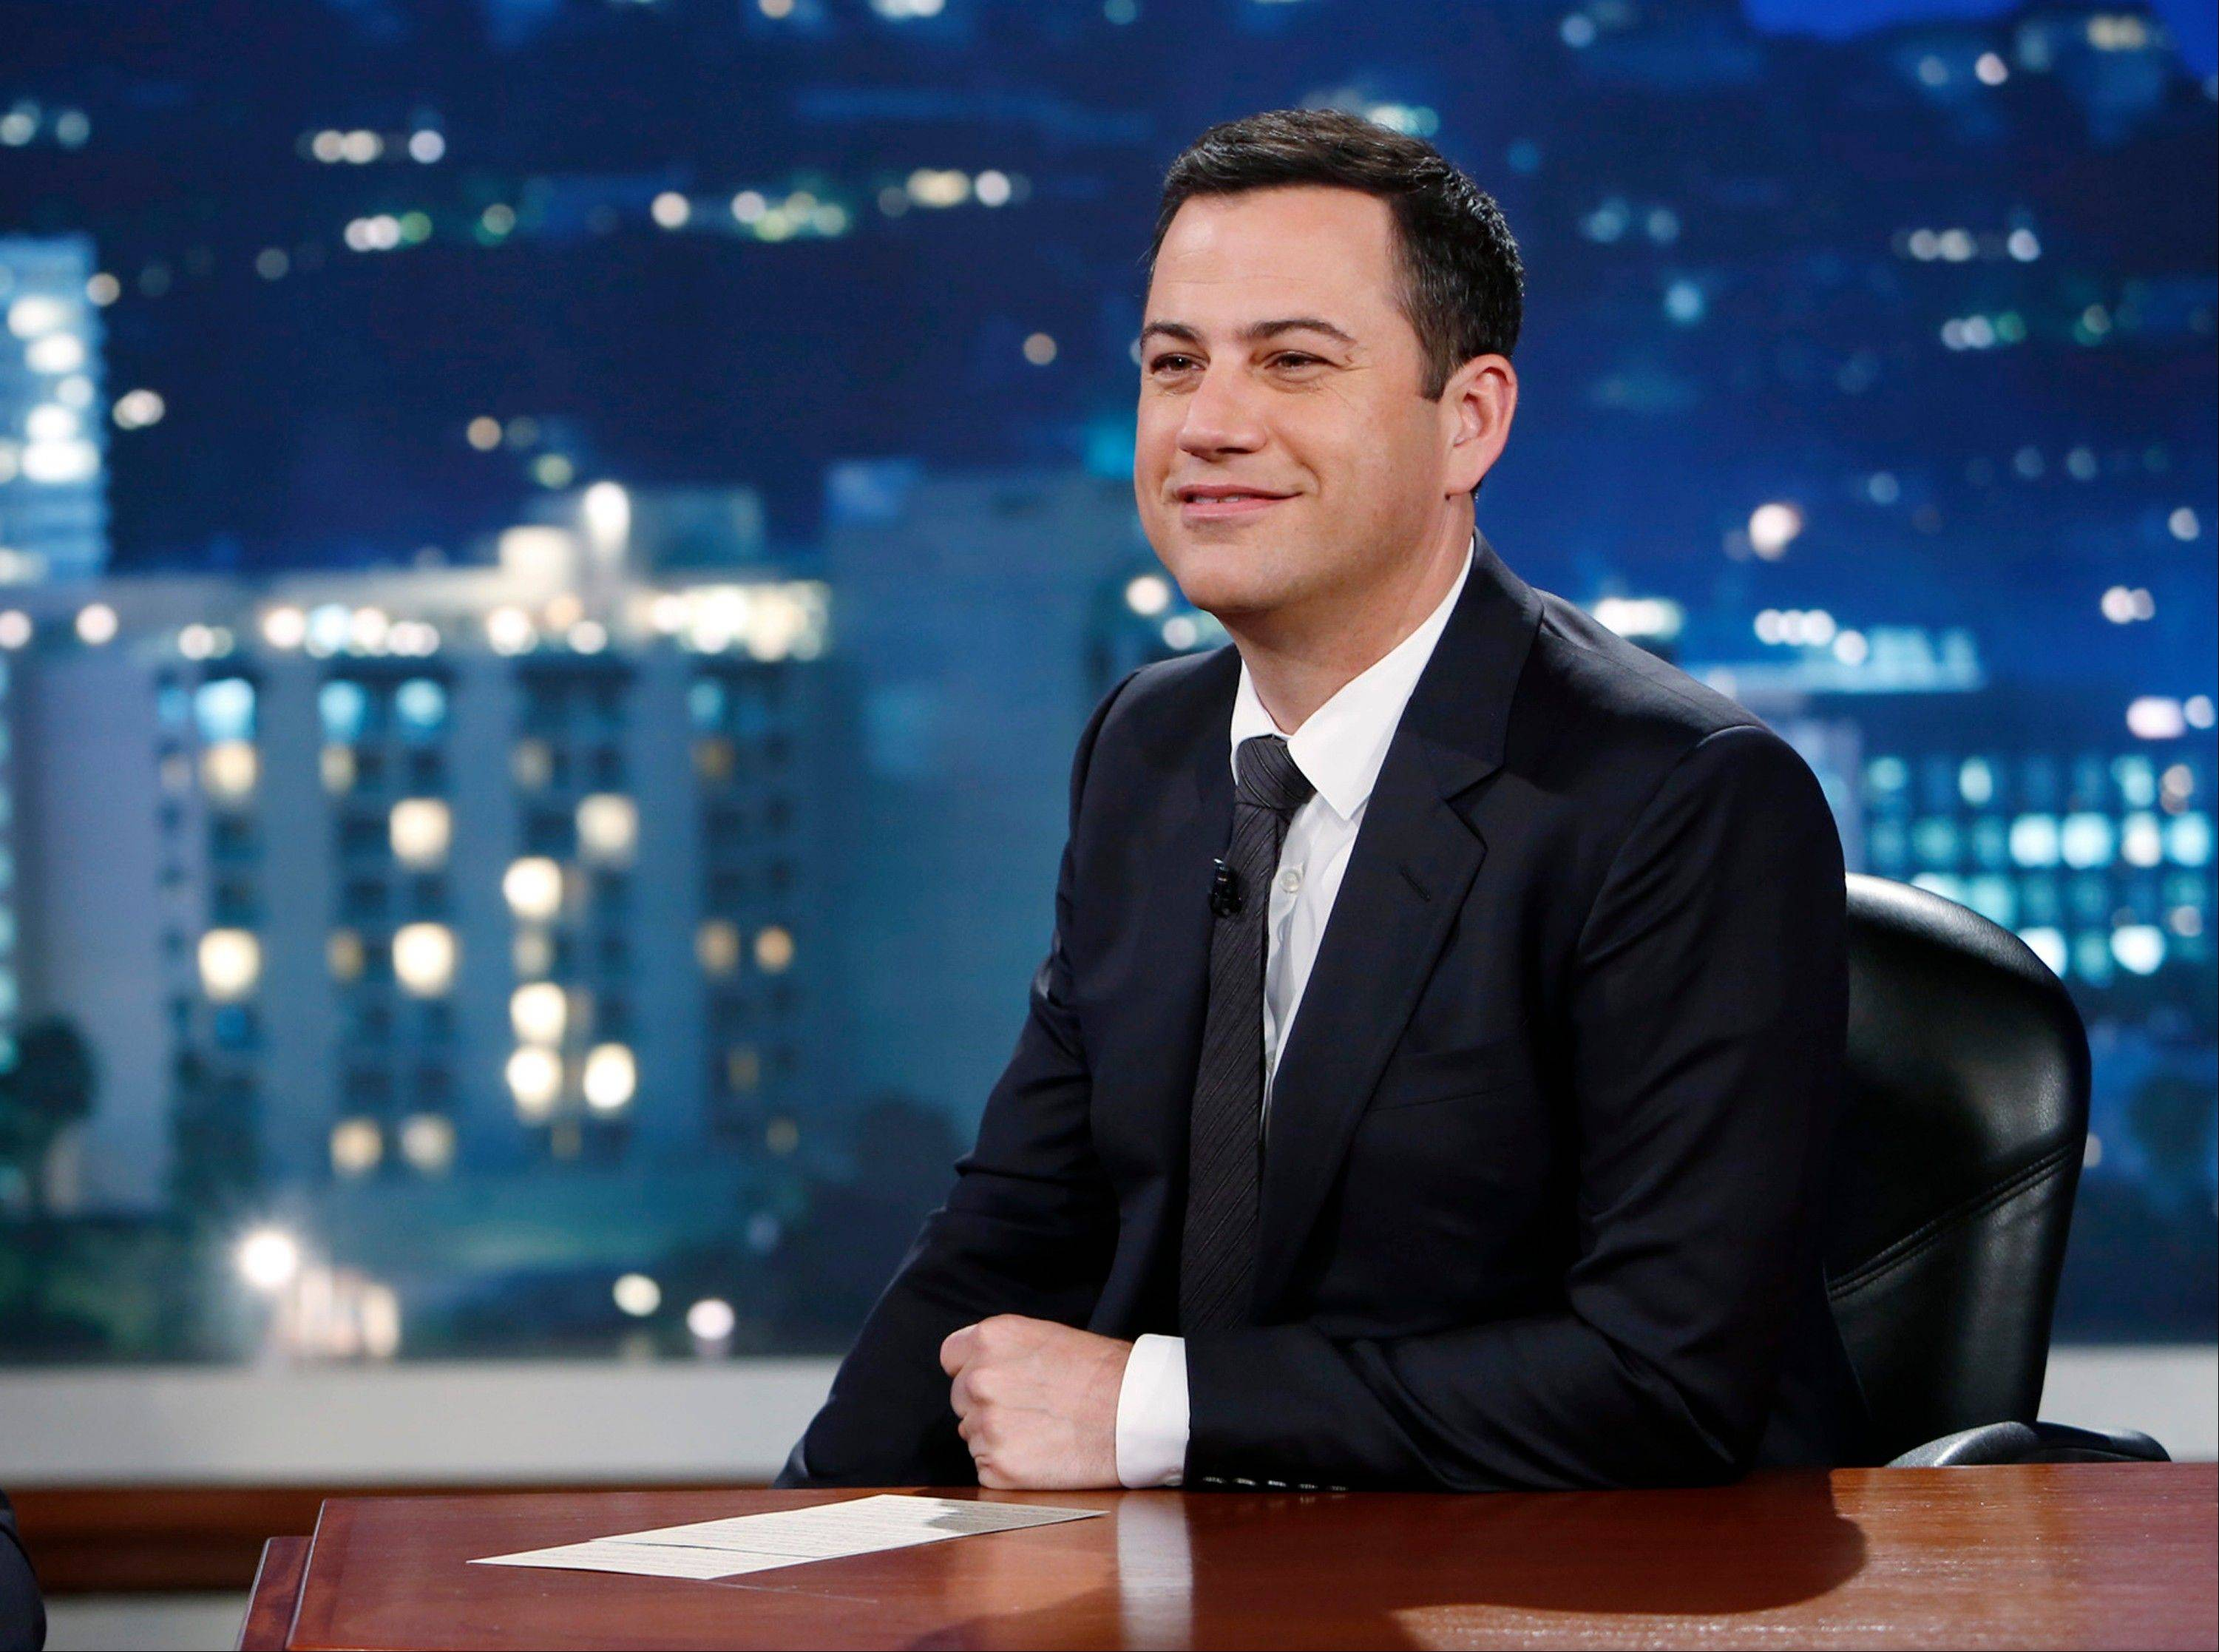 Not everyone finds Jimmy Kimmel's annual Halloween prank funny.